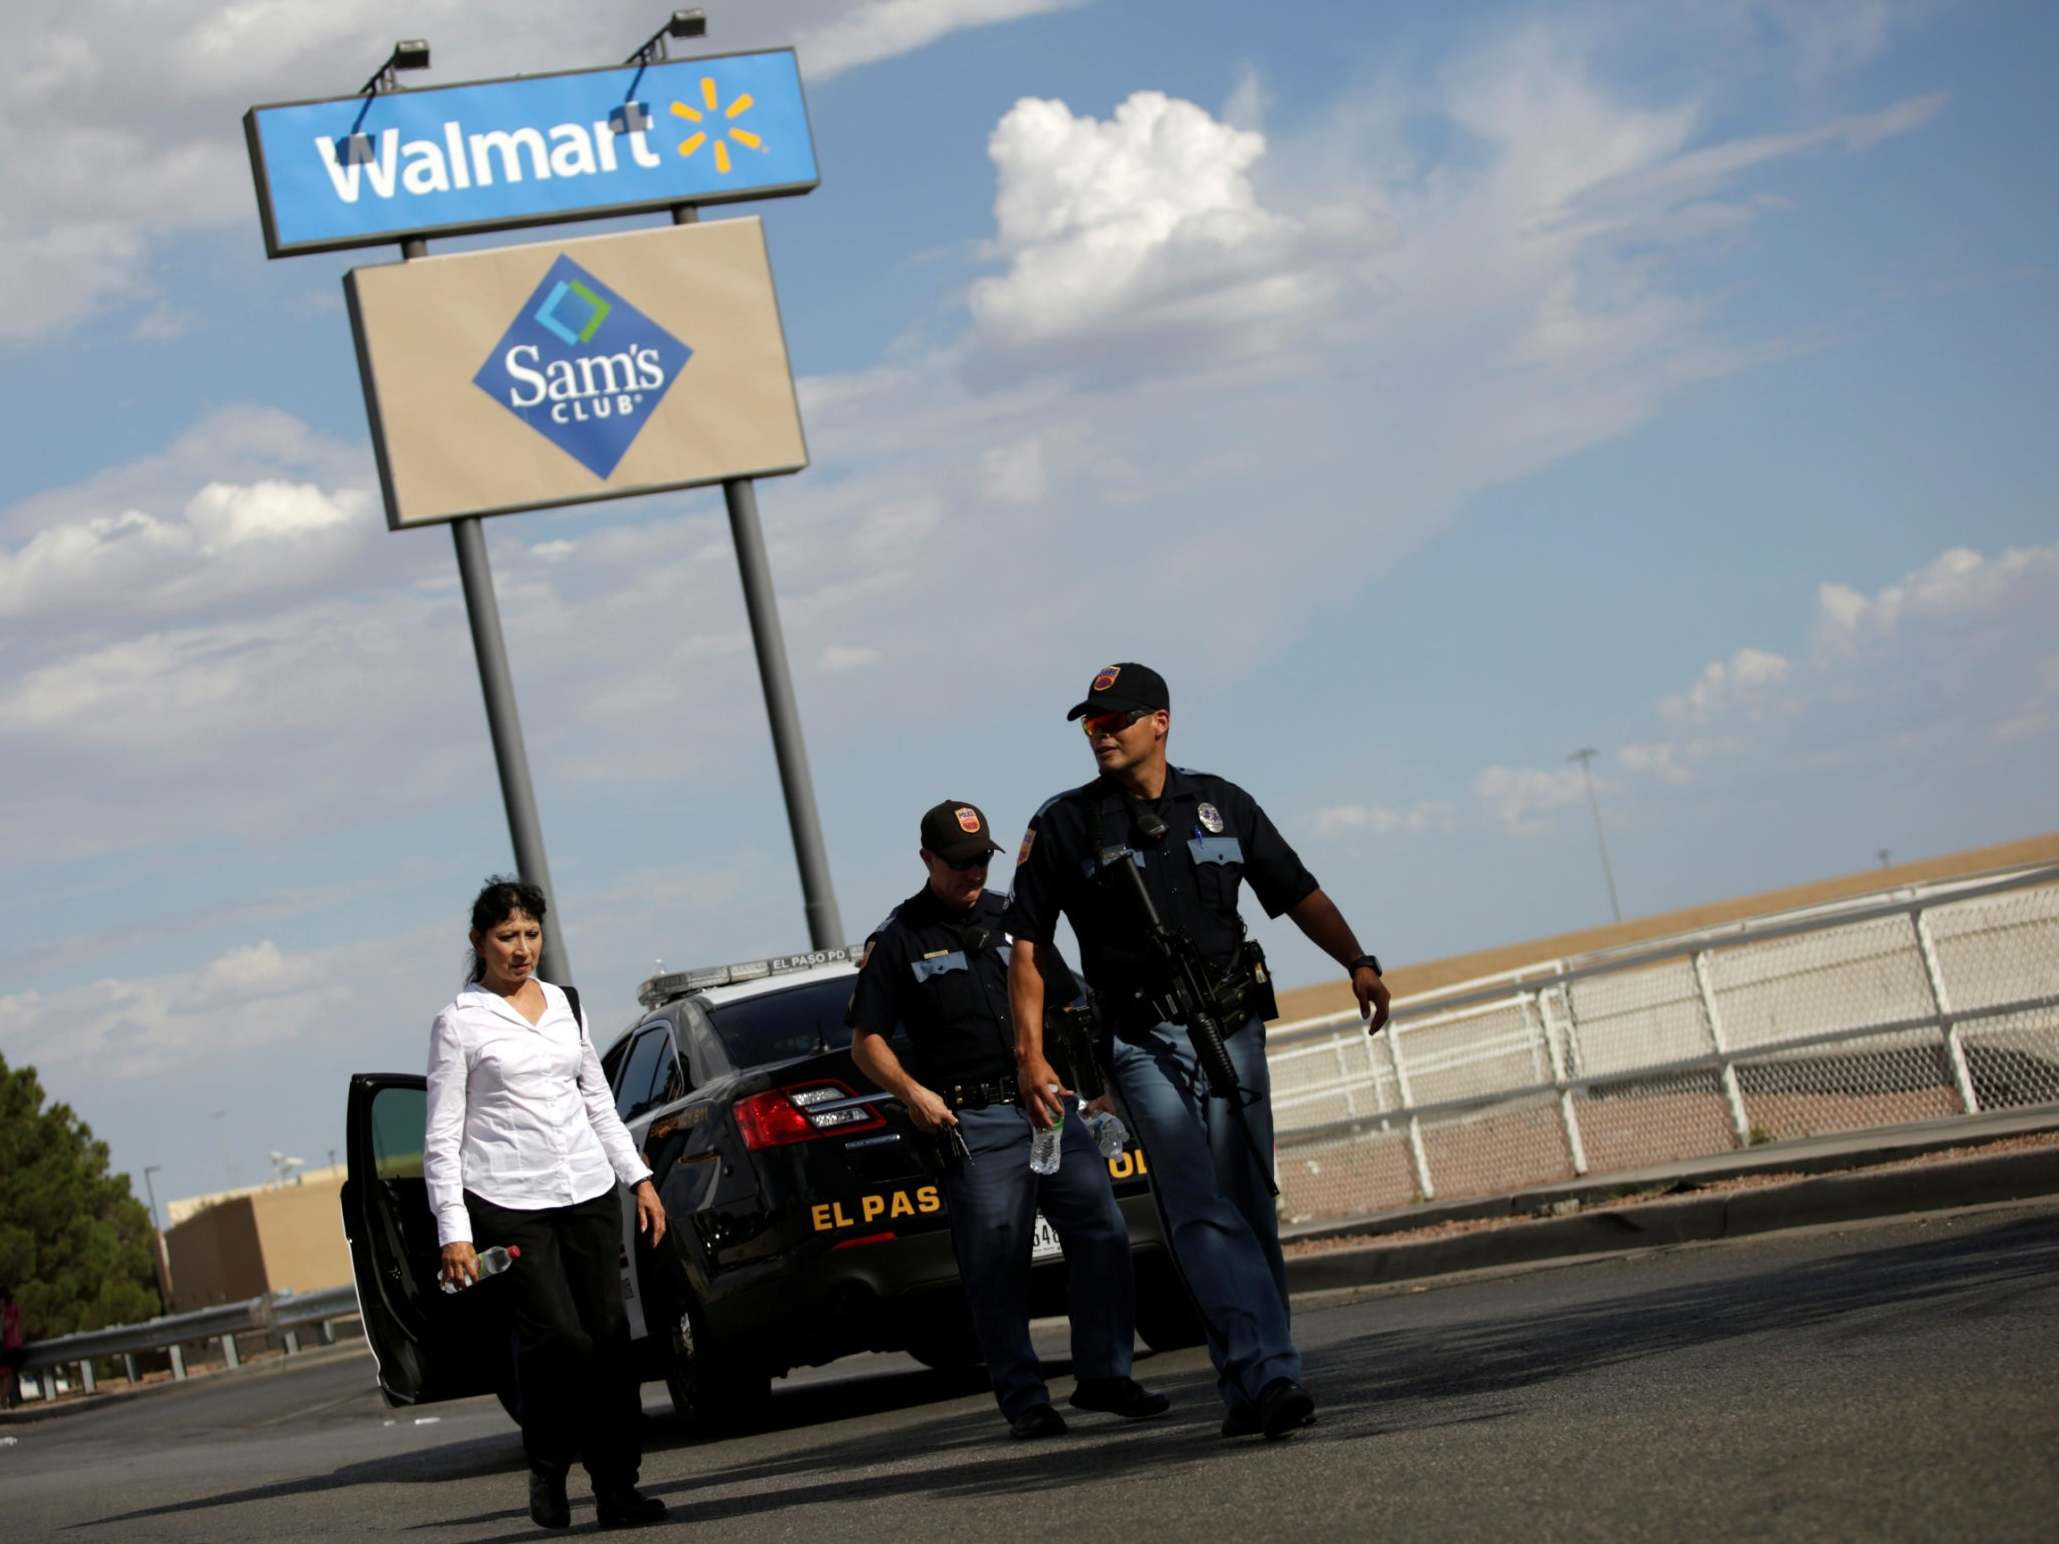 Walmart - latest news, breaking stories and comment - The